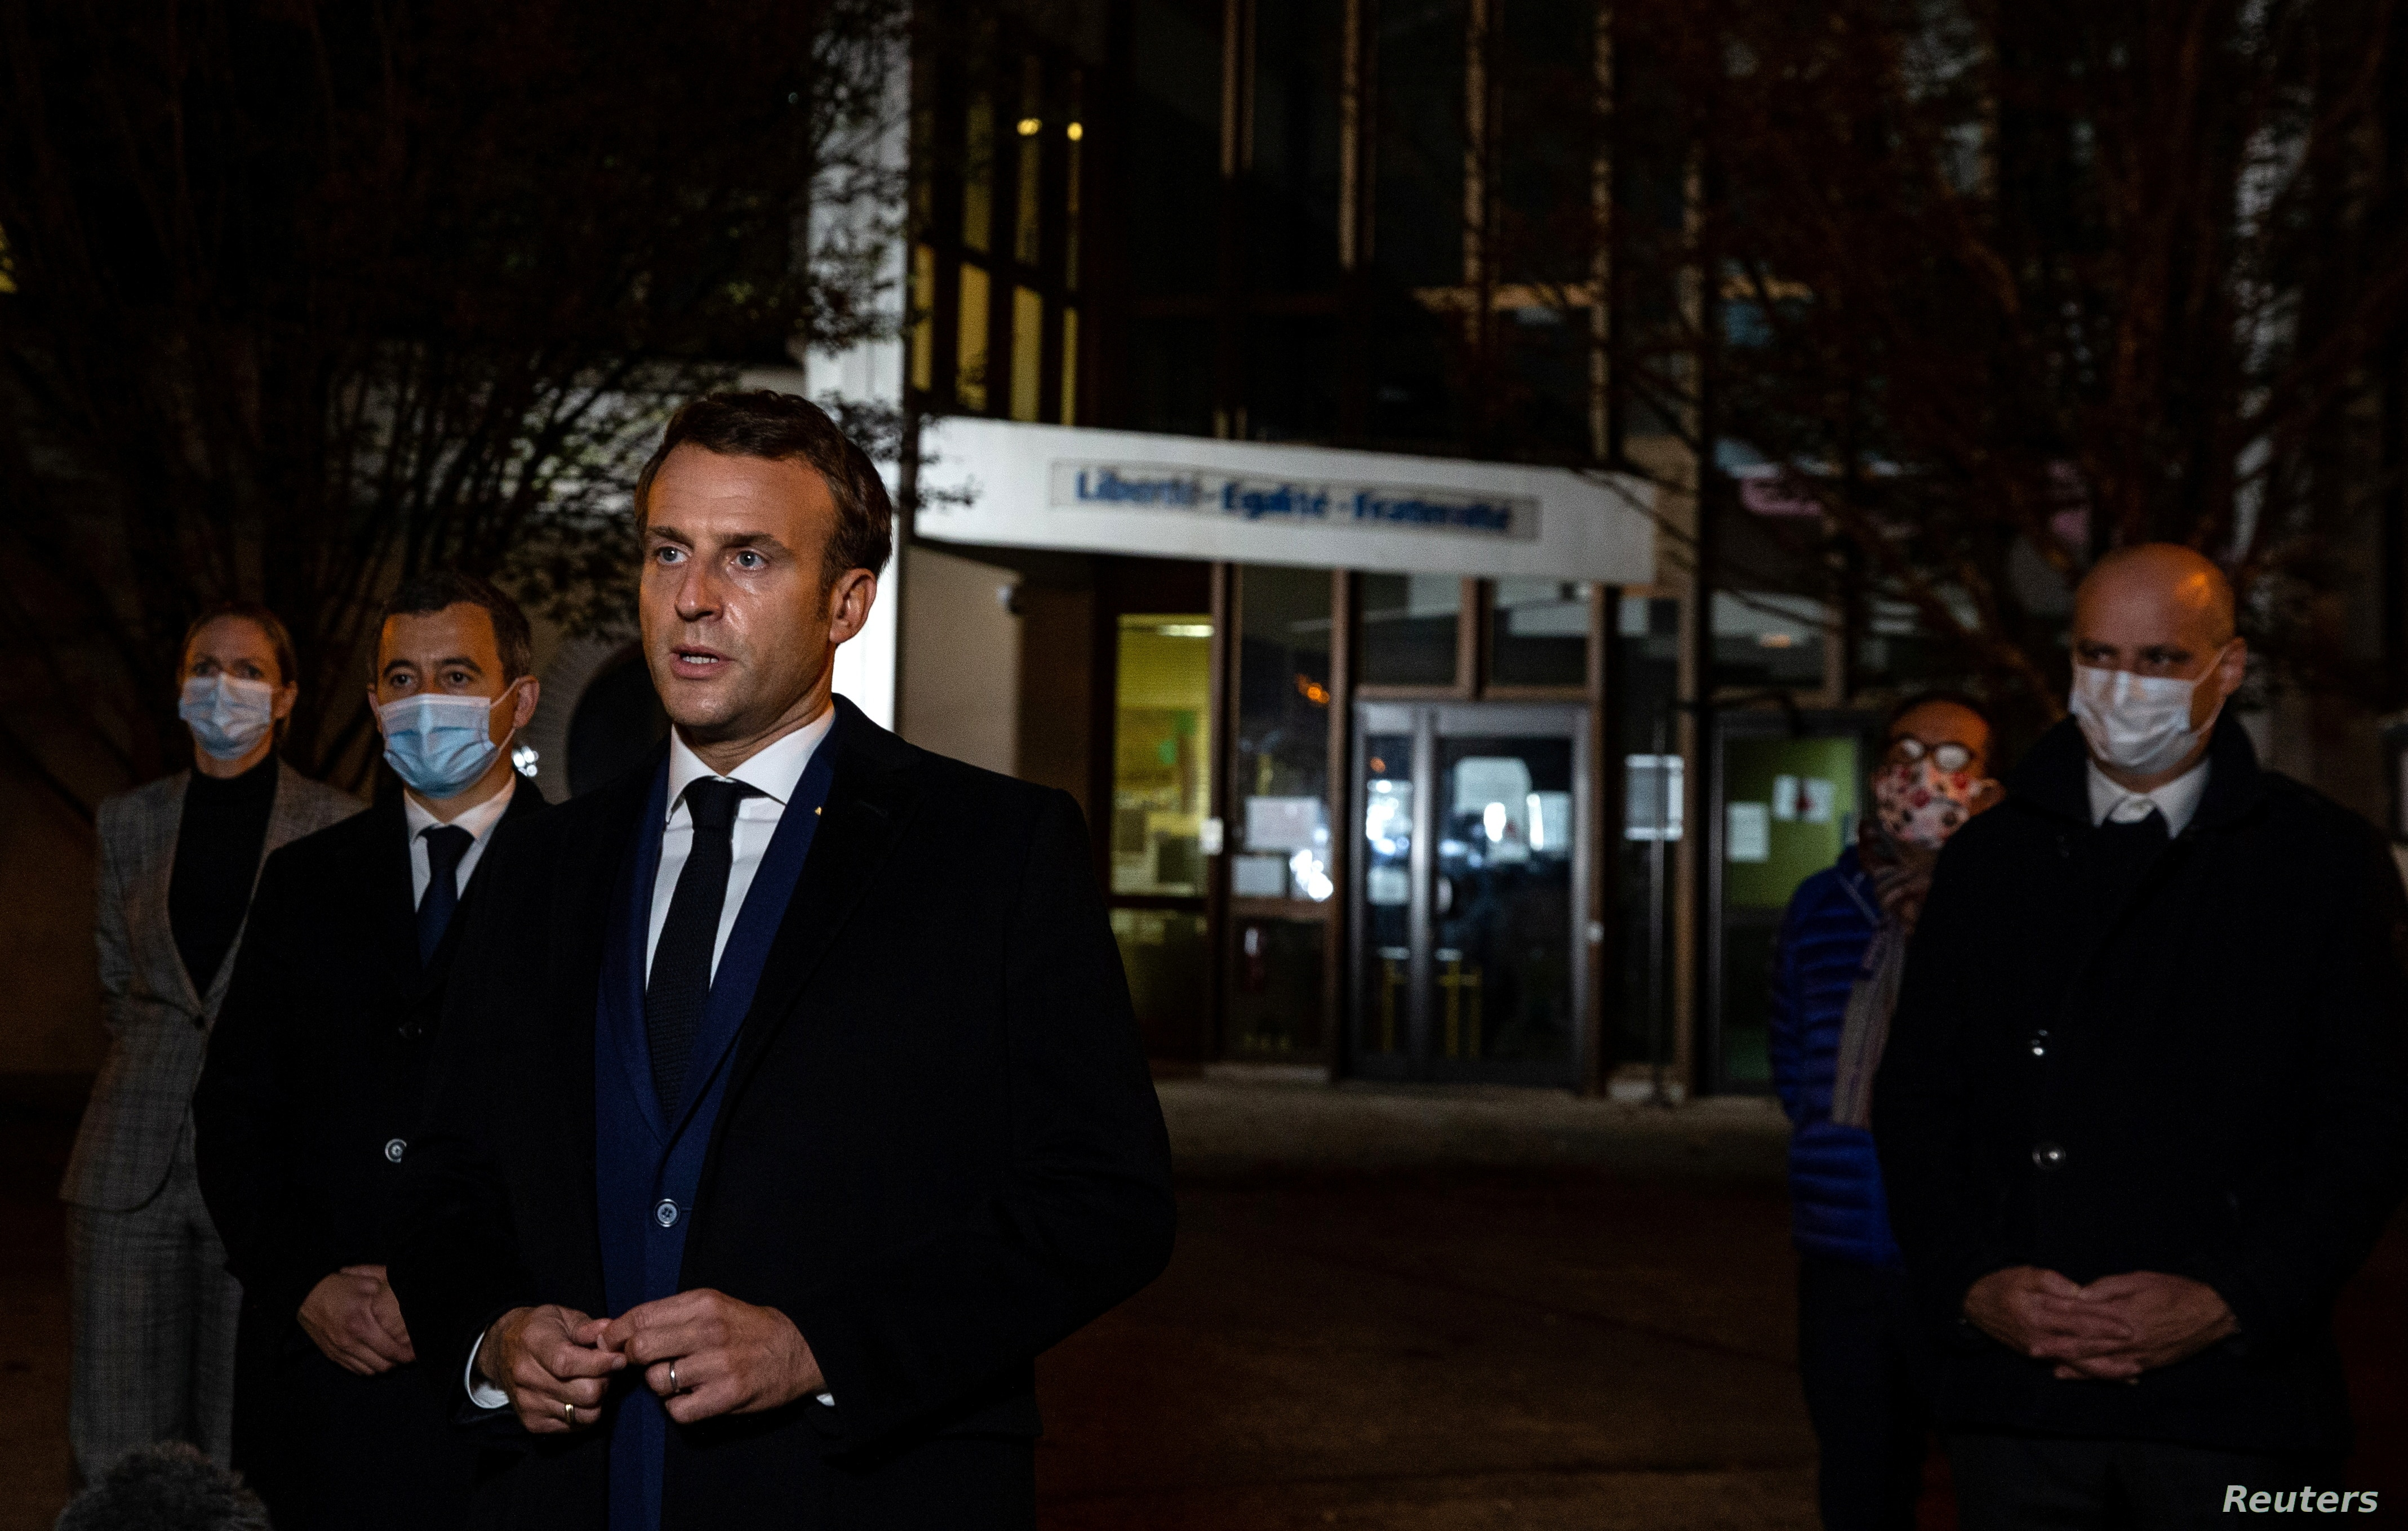 French President Emmanuel Macron flanked by offcials speaks to the press following a stabbing attack at a school in the Conflans-Sainte-Honorine suburb of Paris France Oct. 16 2020